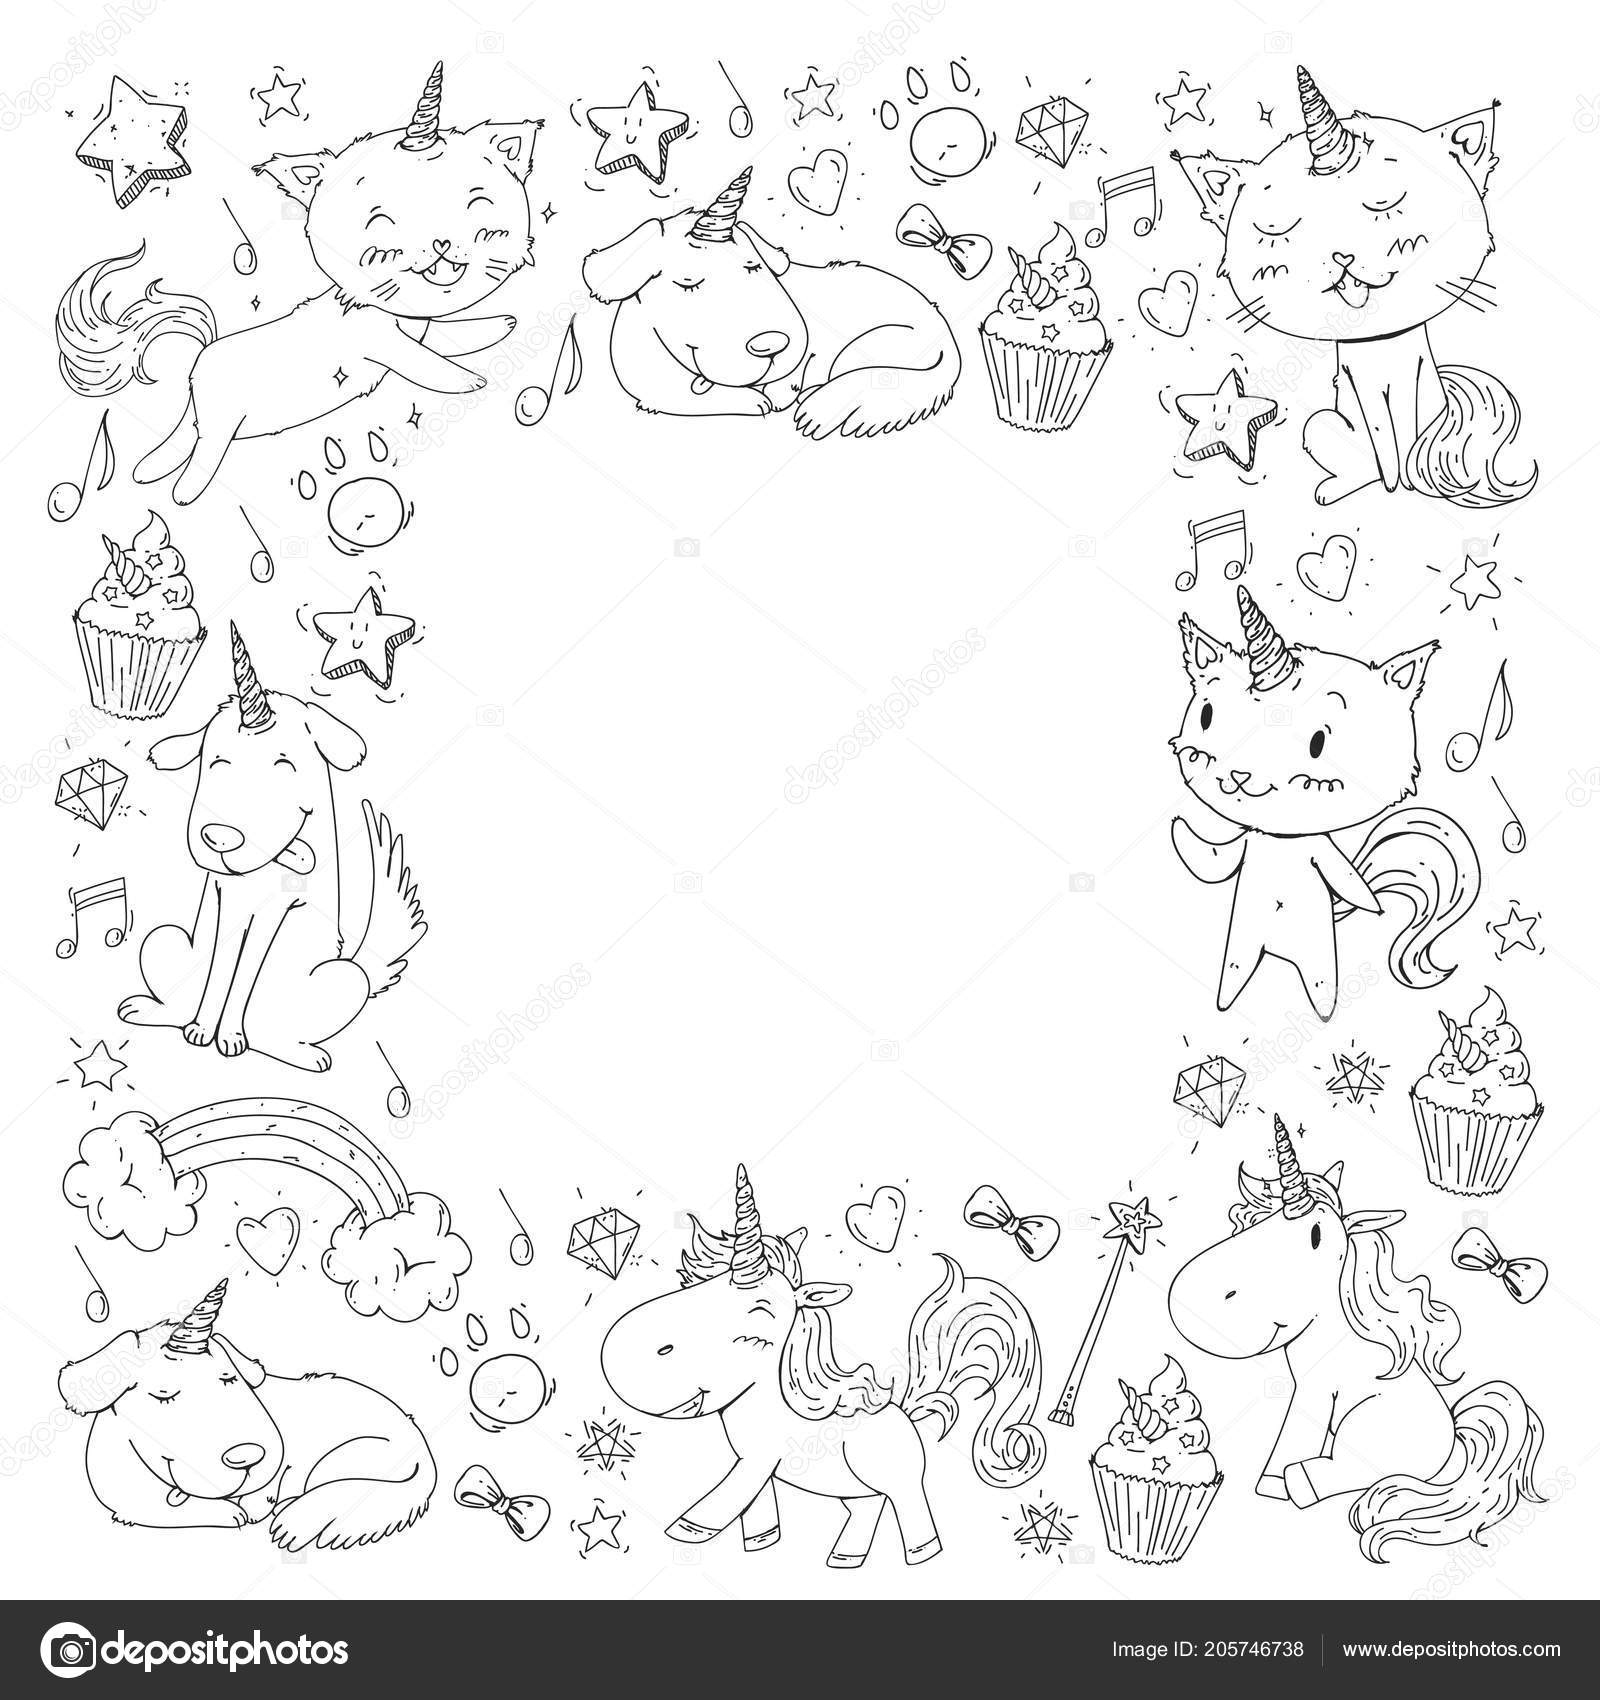 Unicorn Cats Dog Horse Pony Coloring Page Children Kindergarten ...